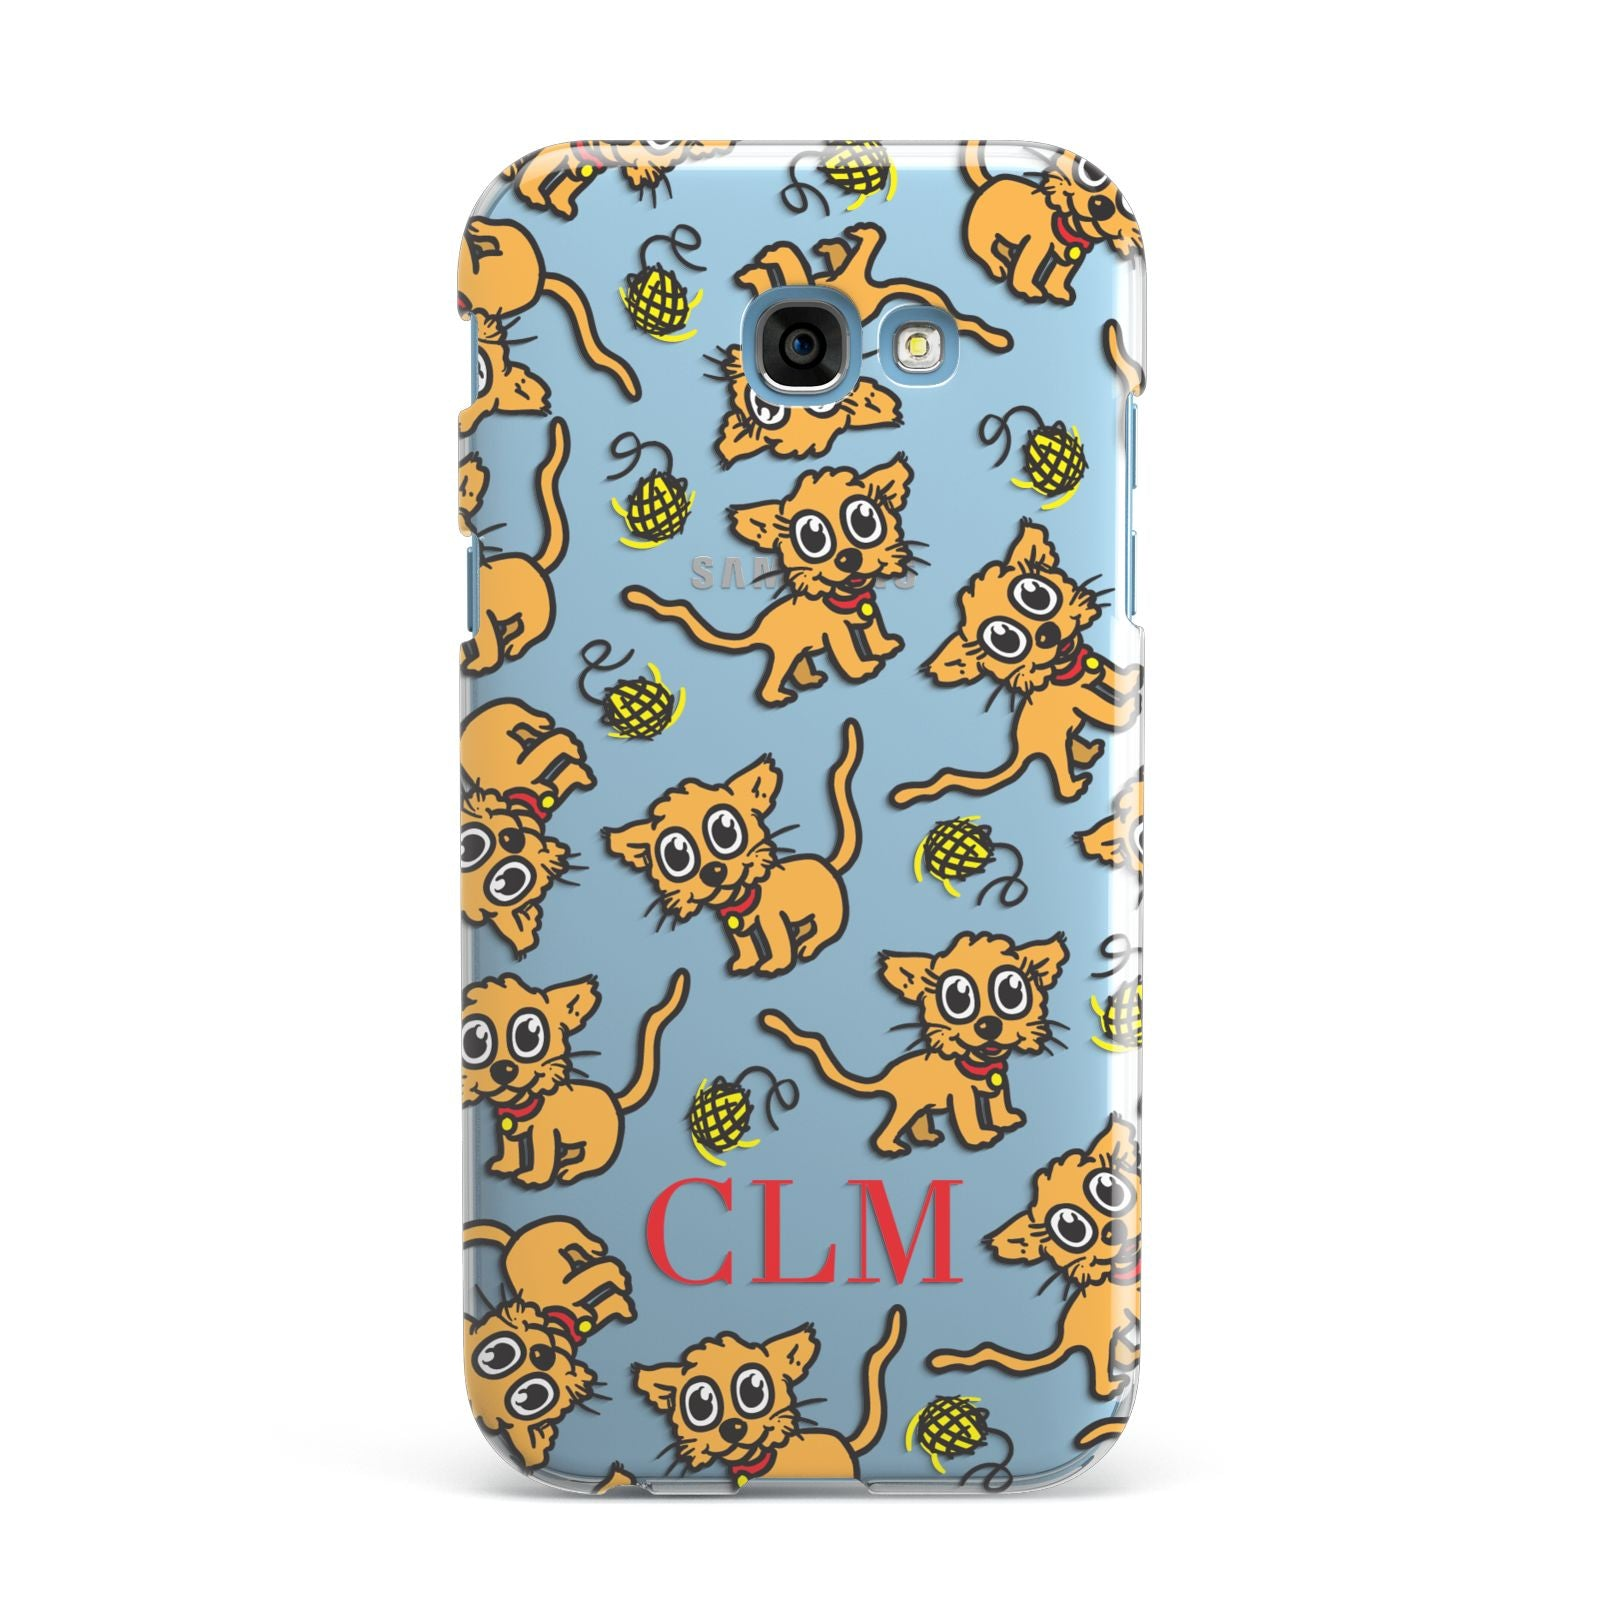 Personalised Puppy Initials Clear Samsung Galaxy A7 2017 Case